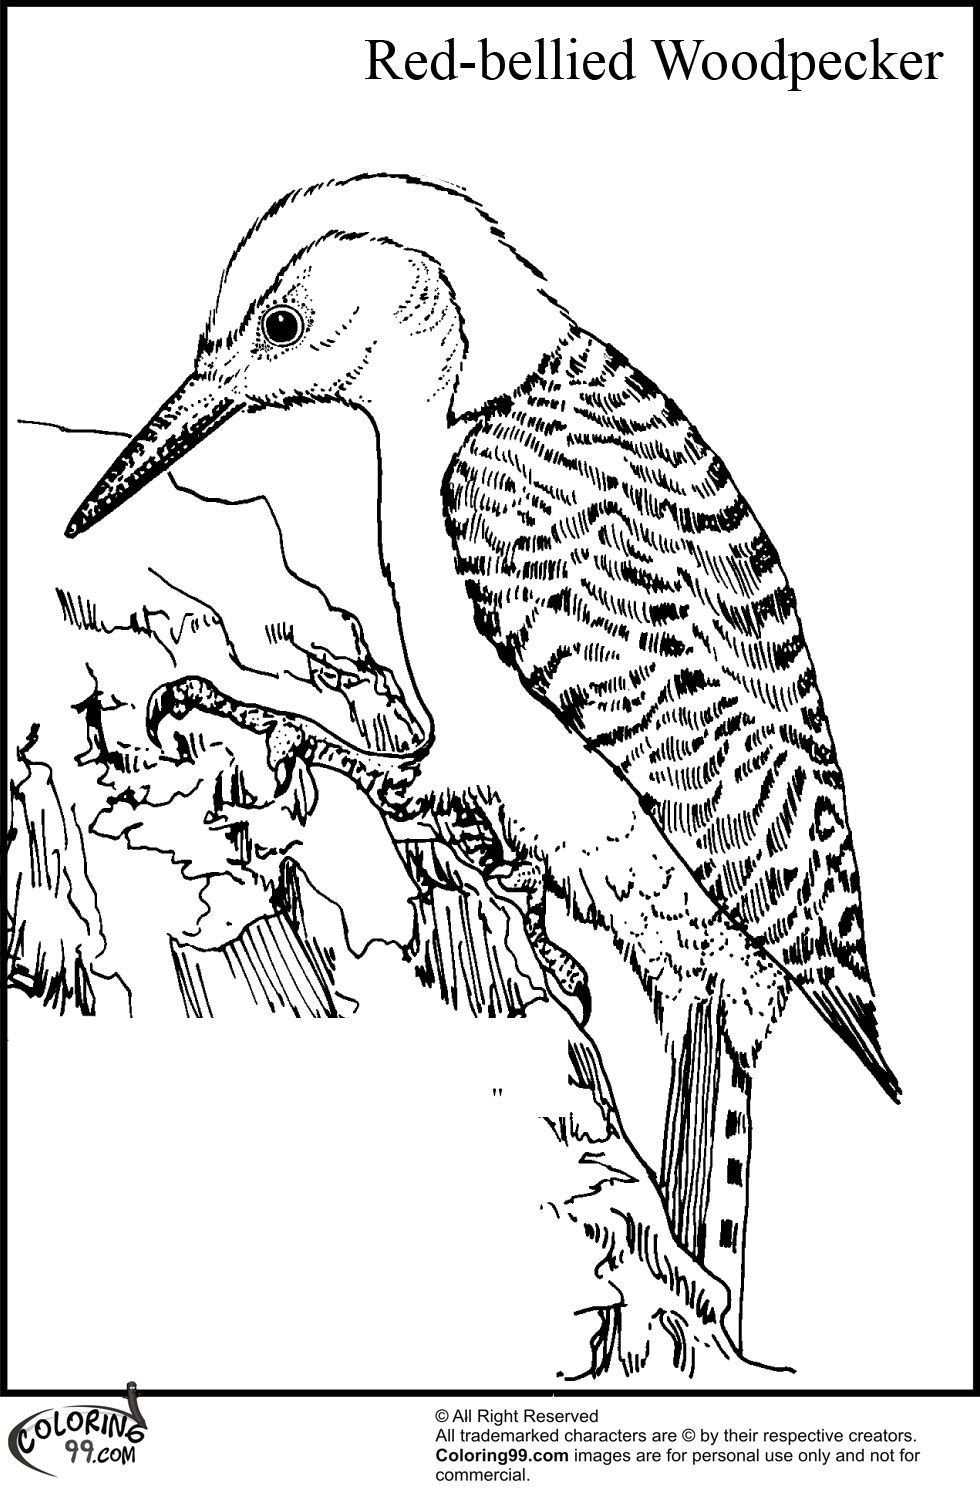 Woodpecker Coloring Pages Team Colors Coloring Pages Bird Coloring Pages Woodpecker